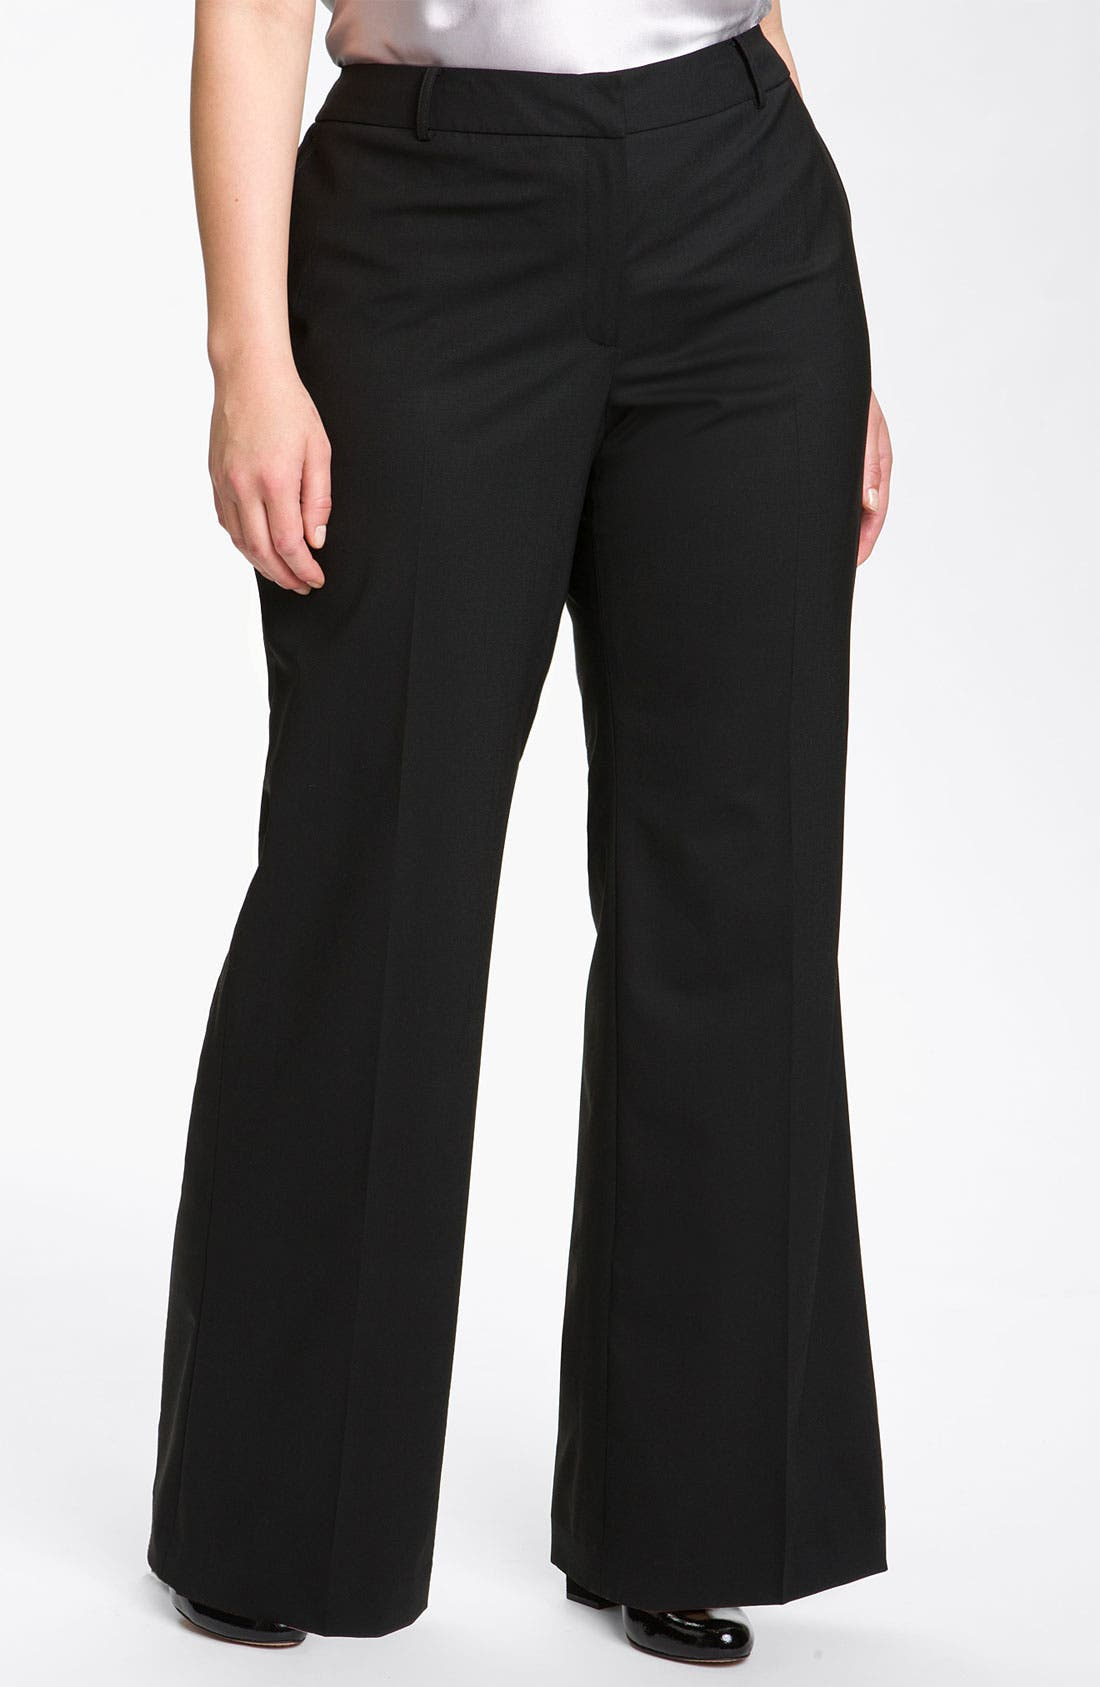 Main Image - Lafayette 148 New York 'Delancy' Stretch Wool Trousers (Plus)